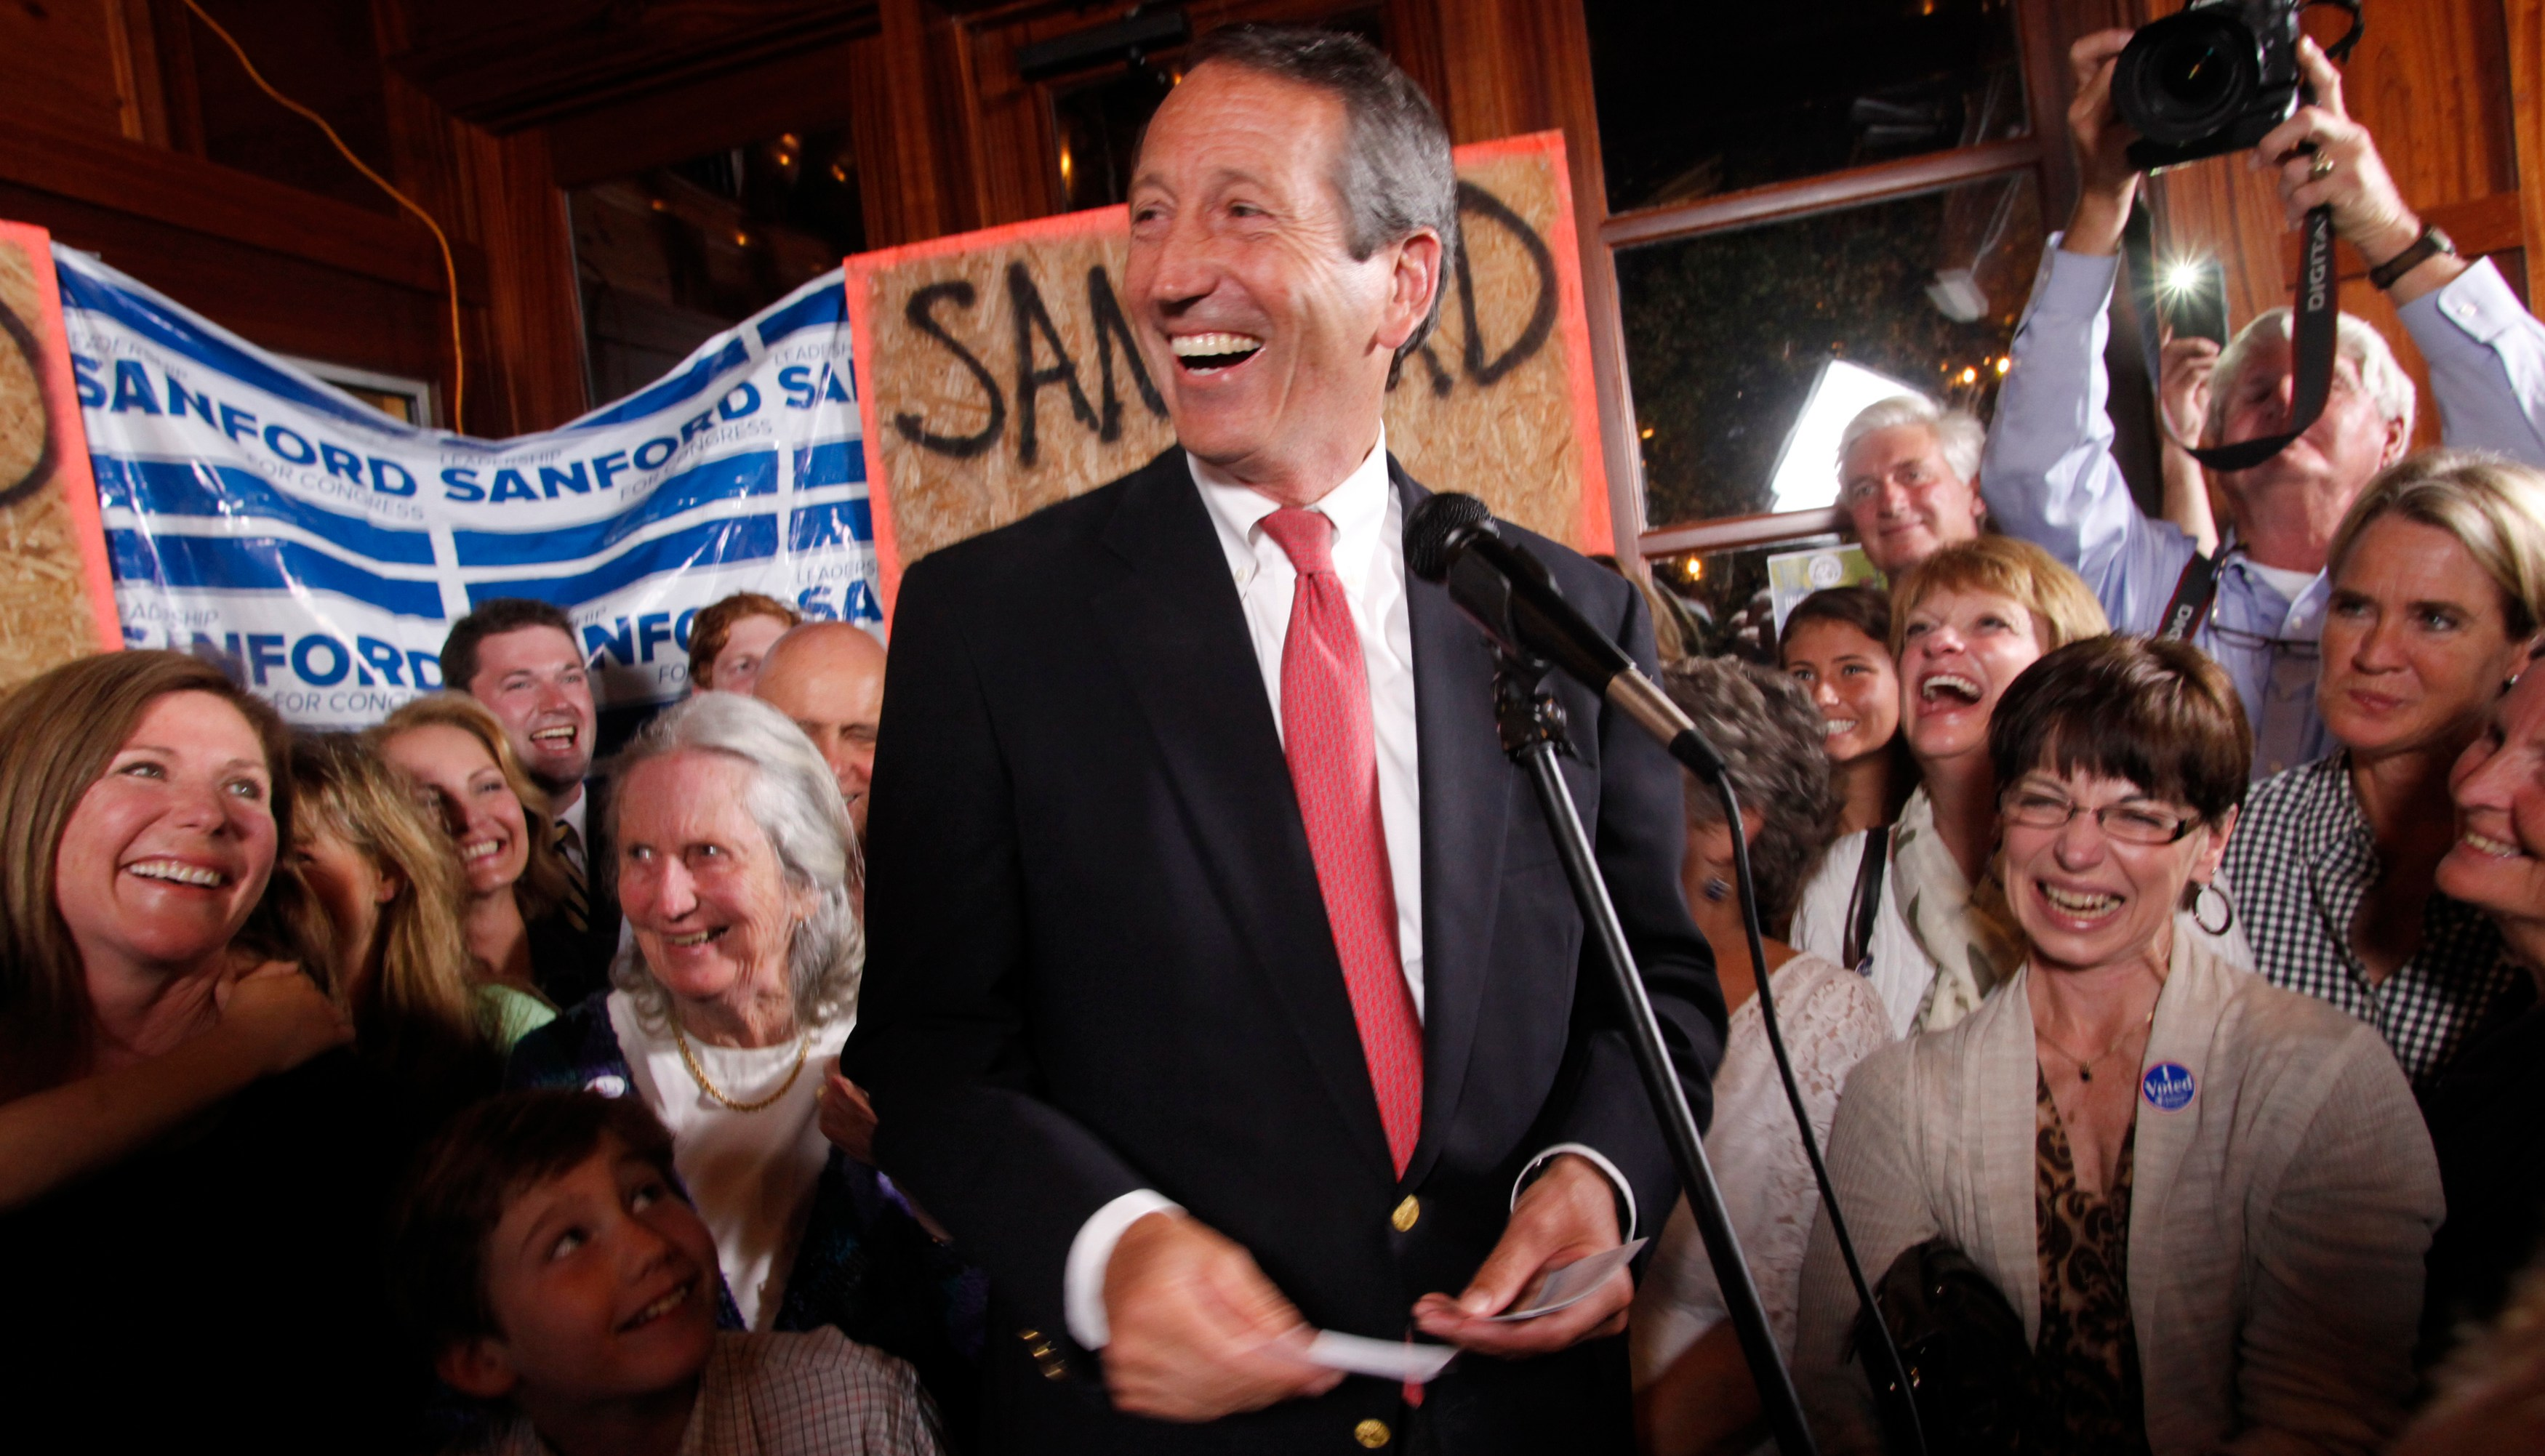 Former South Carolina Governor Mark Sanford celebrates his victory with a large crowd in the South Carolina first district congressional race at Liberty Tap Room in Mount Pleasant, South Carolina May 7, 2013. Republican former Governor Sanford made a political comeback on Tuesday, rebounding from a sex scandal to beat Democrat Elizabeth Colbert Busch in a congressional race to represent coastal South Carolina. REUTERS/Randall Hill  (UNITED STATES - Tags: POLITICS ELECTIONS TPX IMAGES OF THE DAY) - GM1E9580T3T01